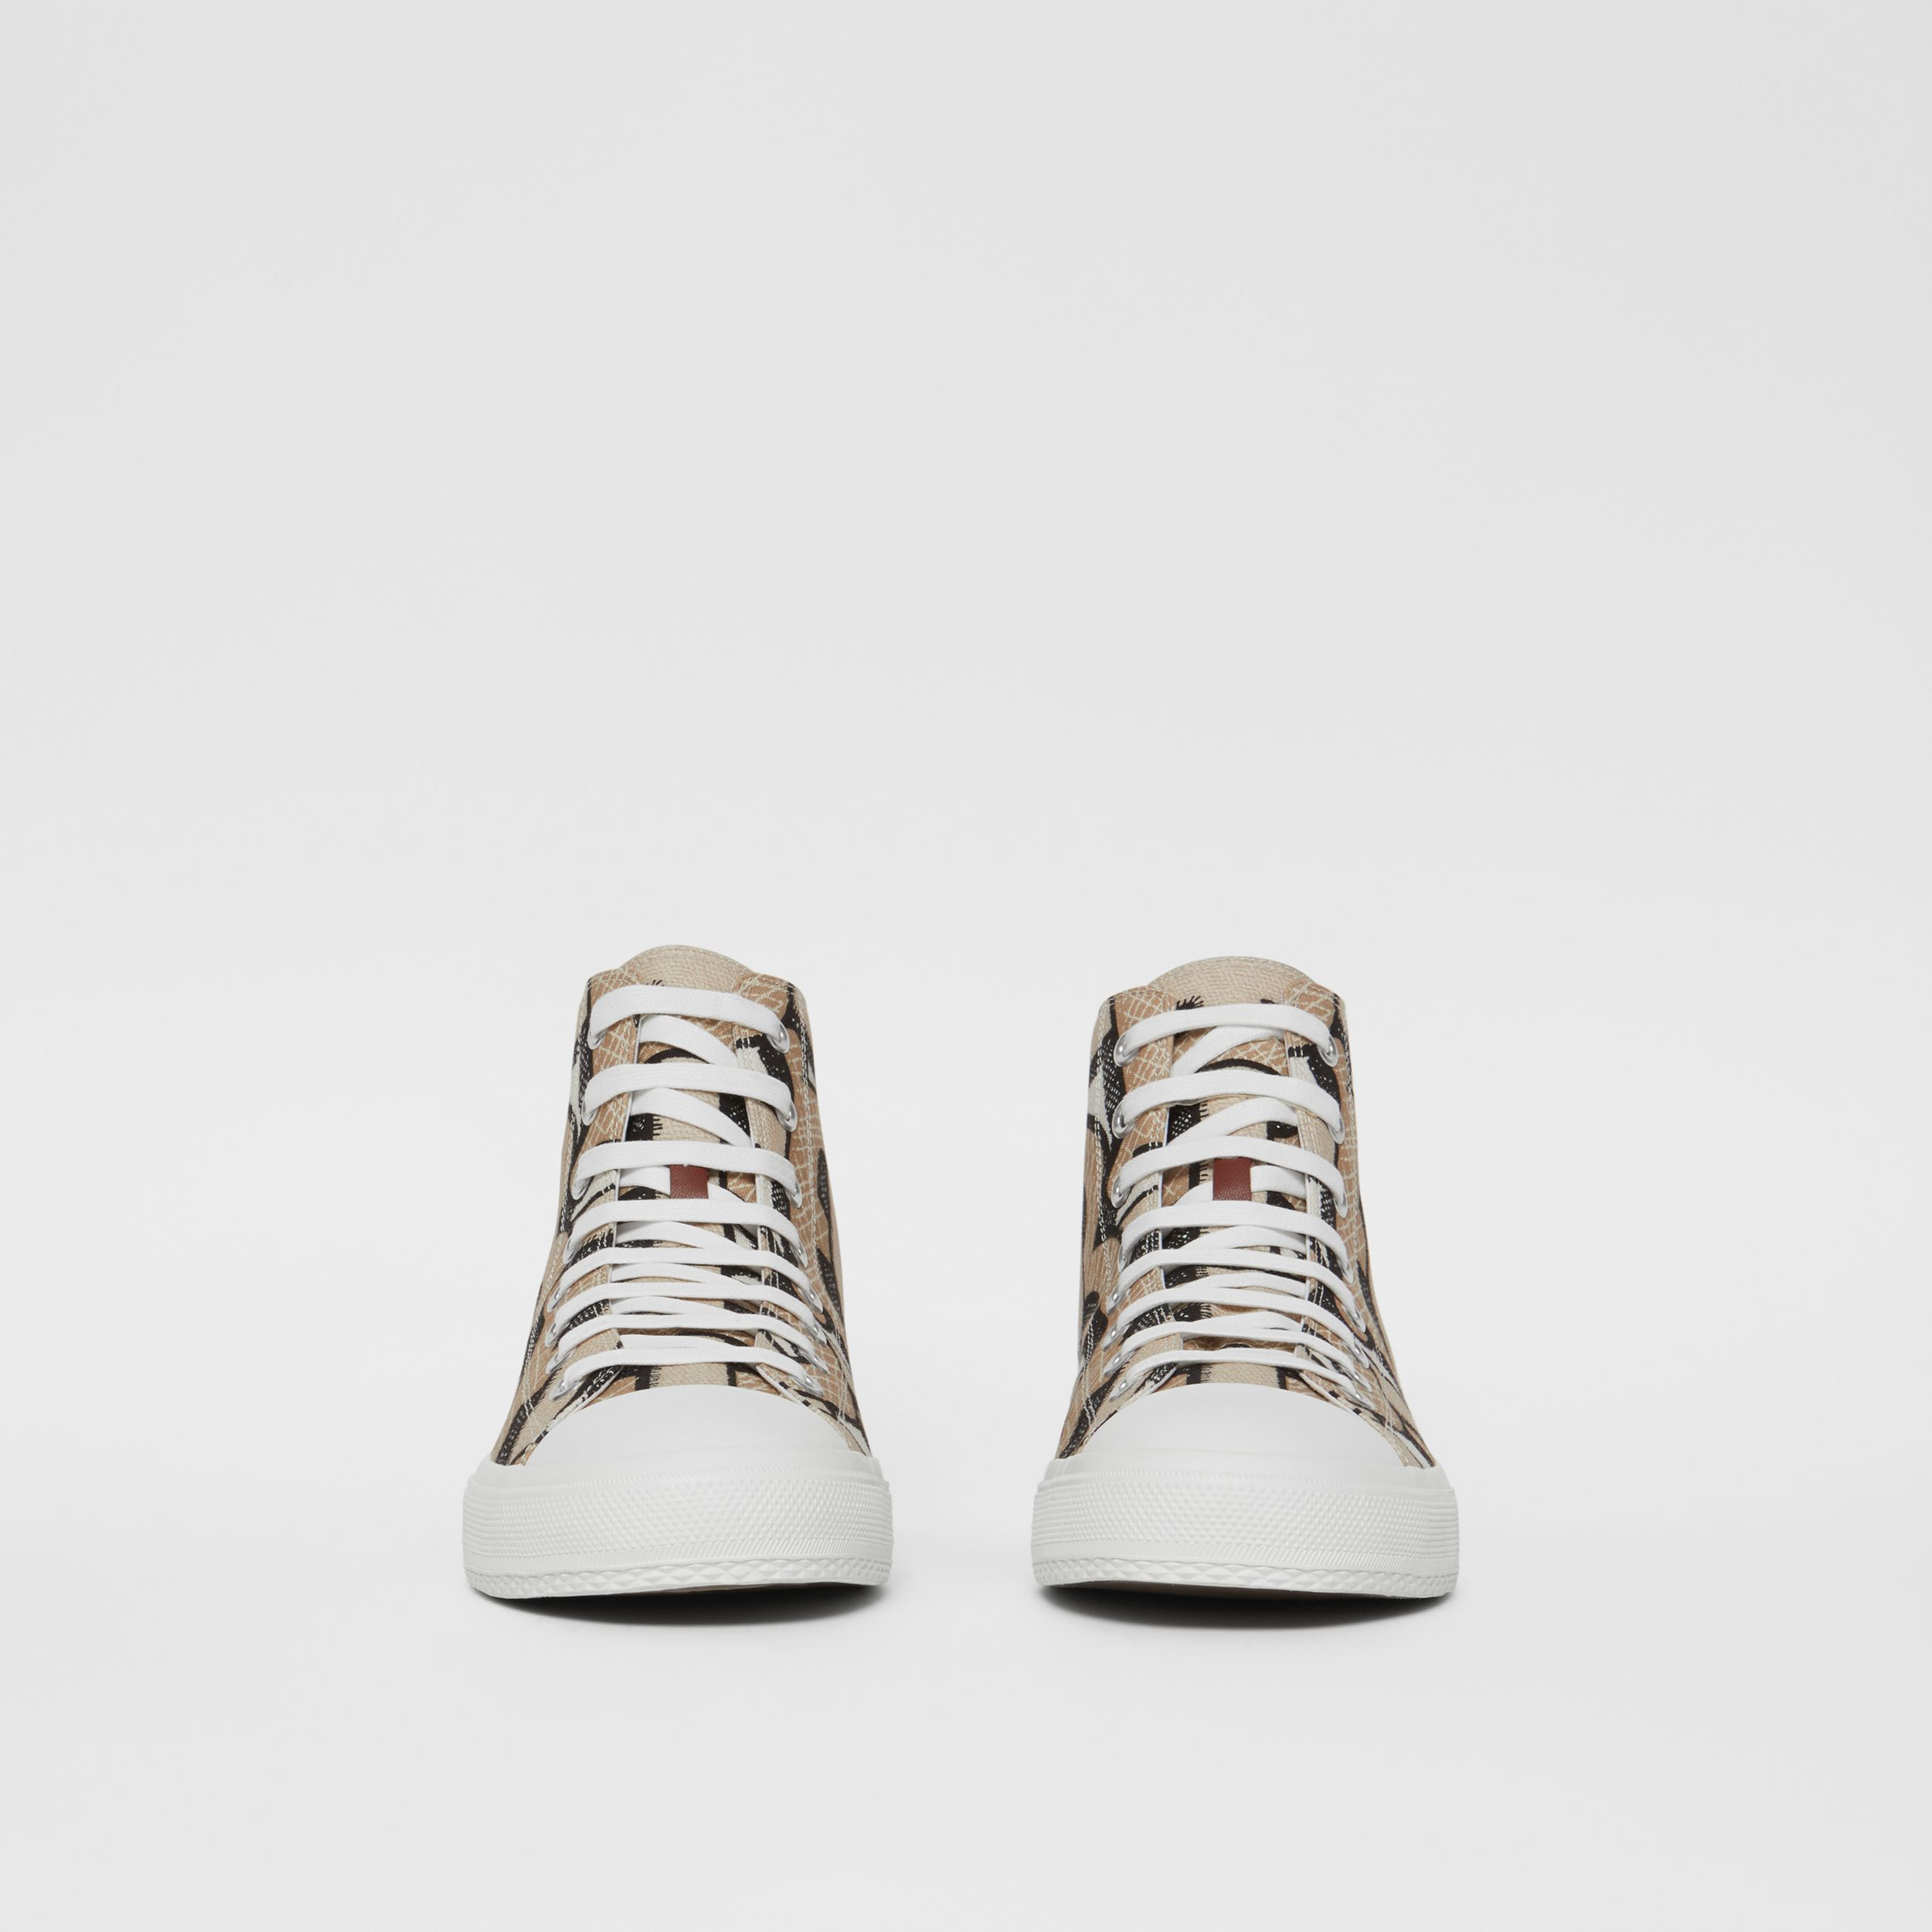 Monogram Print Cotton Canvas High-top Sneakers in Dark Beige - Men | Burberry Canada - 3